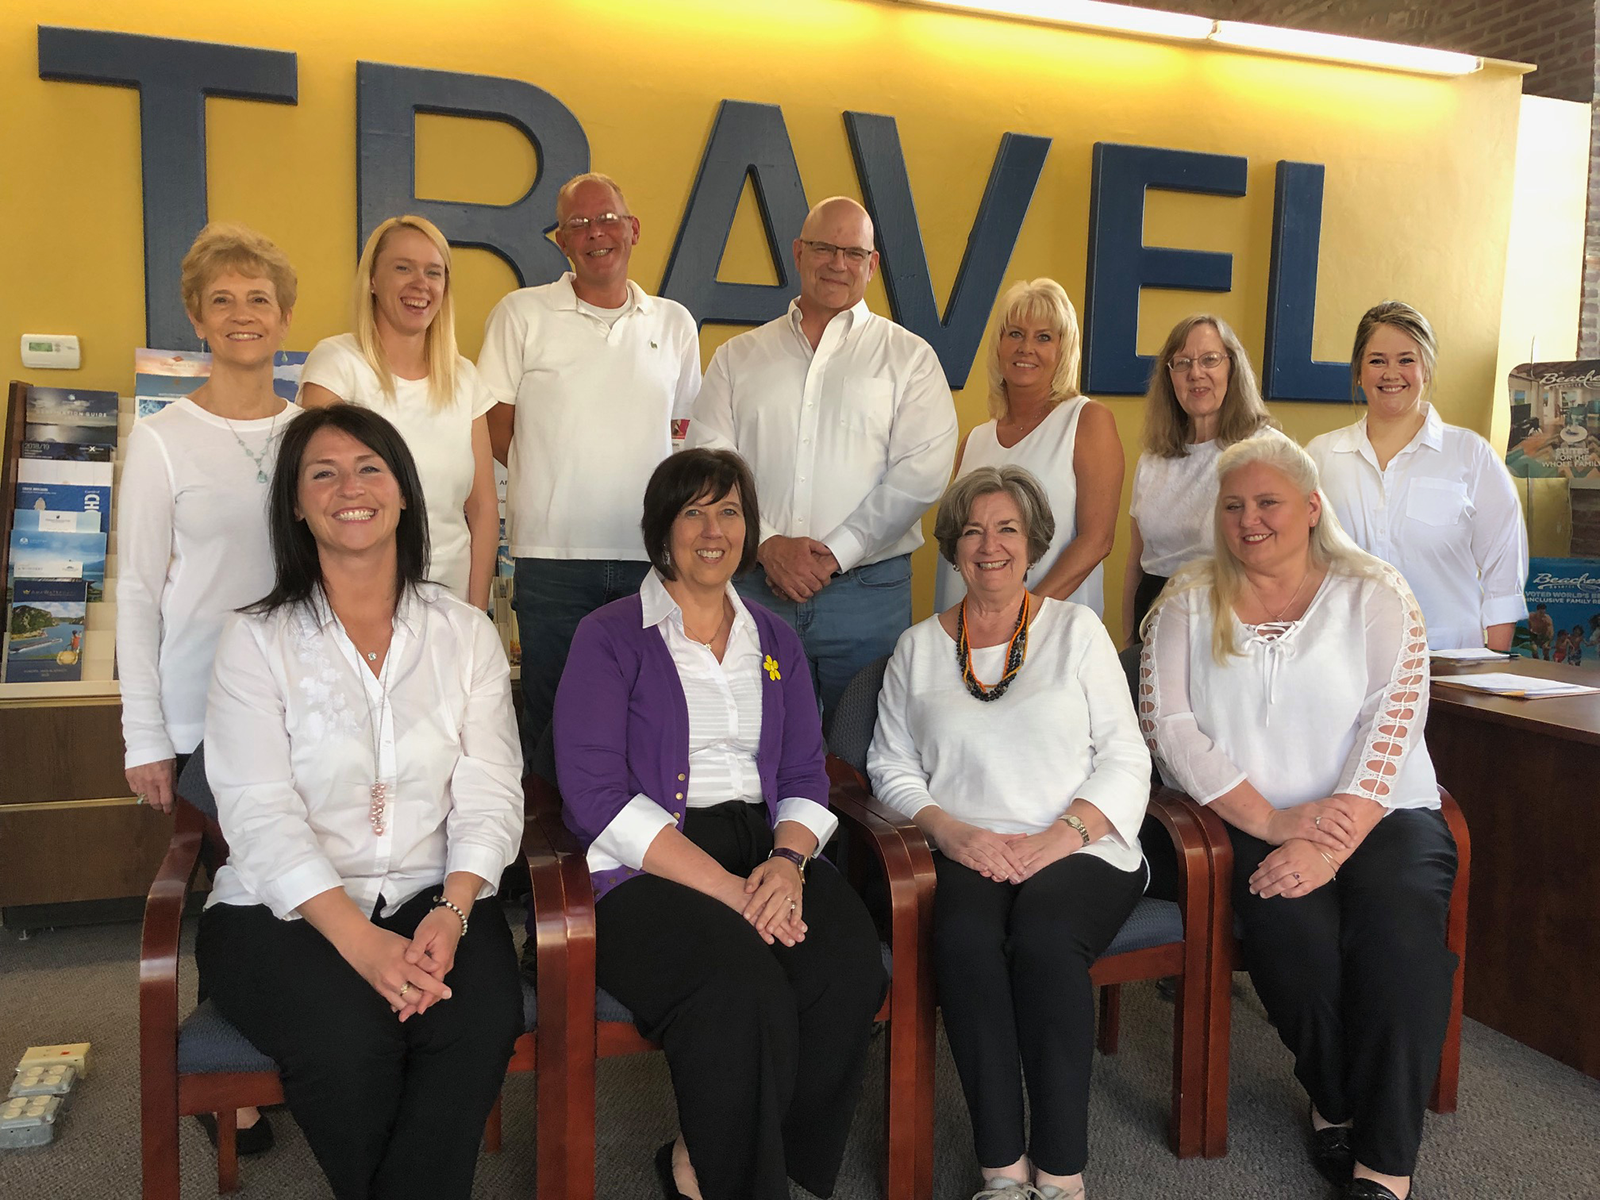 Salem Travel employees